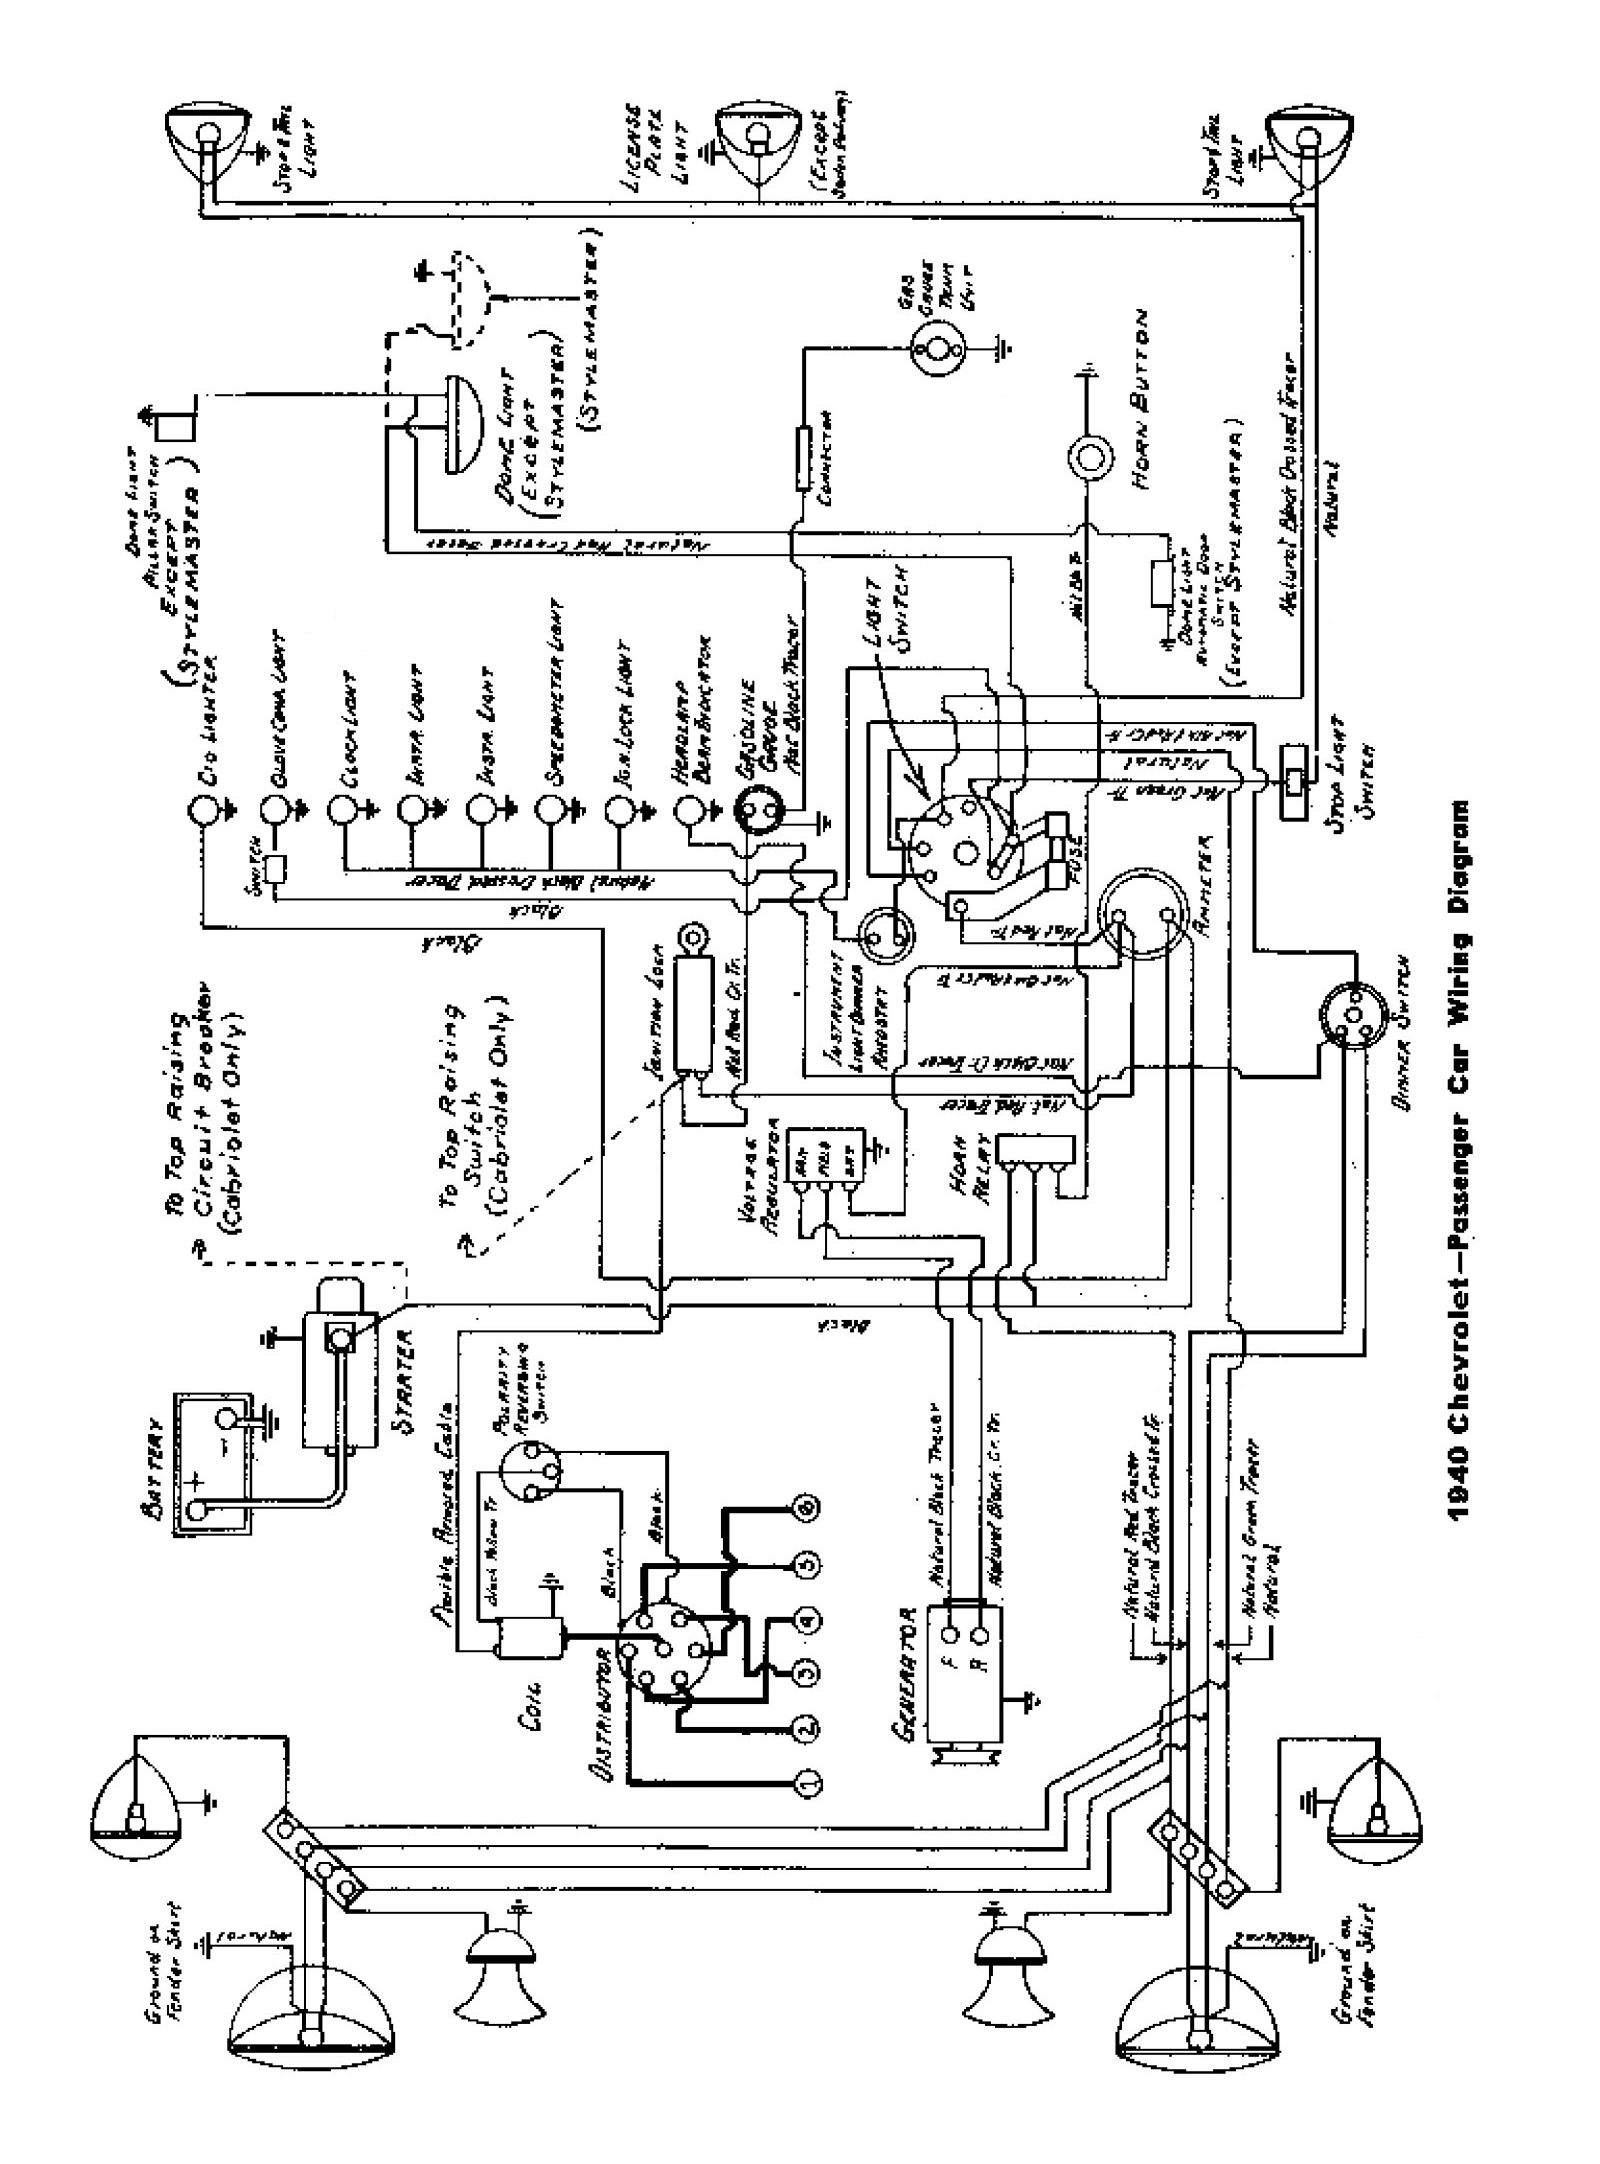 Ignition Wiring Diagram Moreover Ford Hei Distributor Wiring Diagram